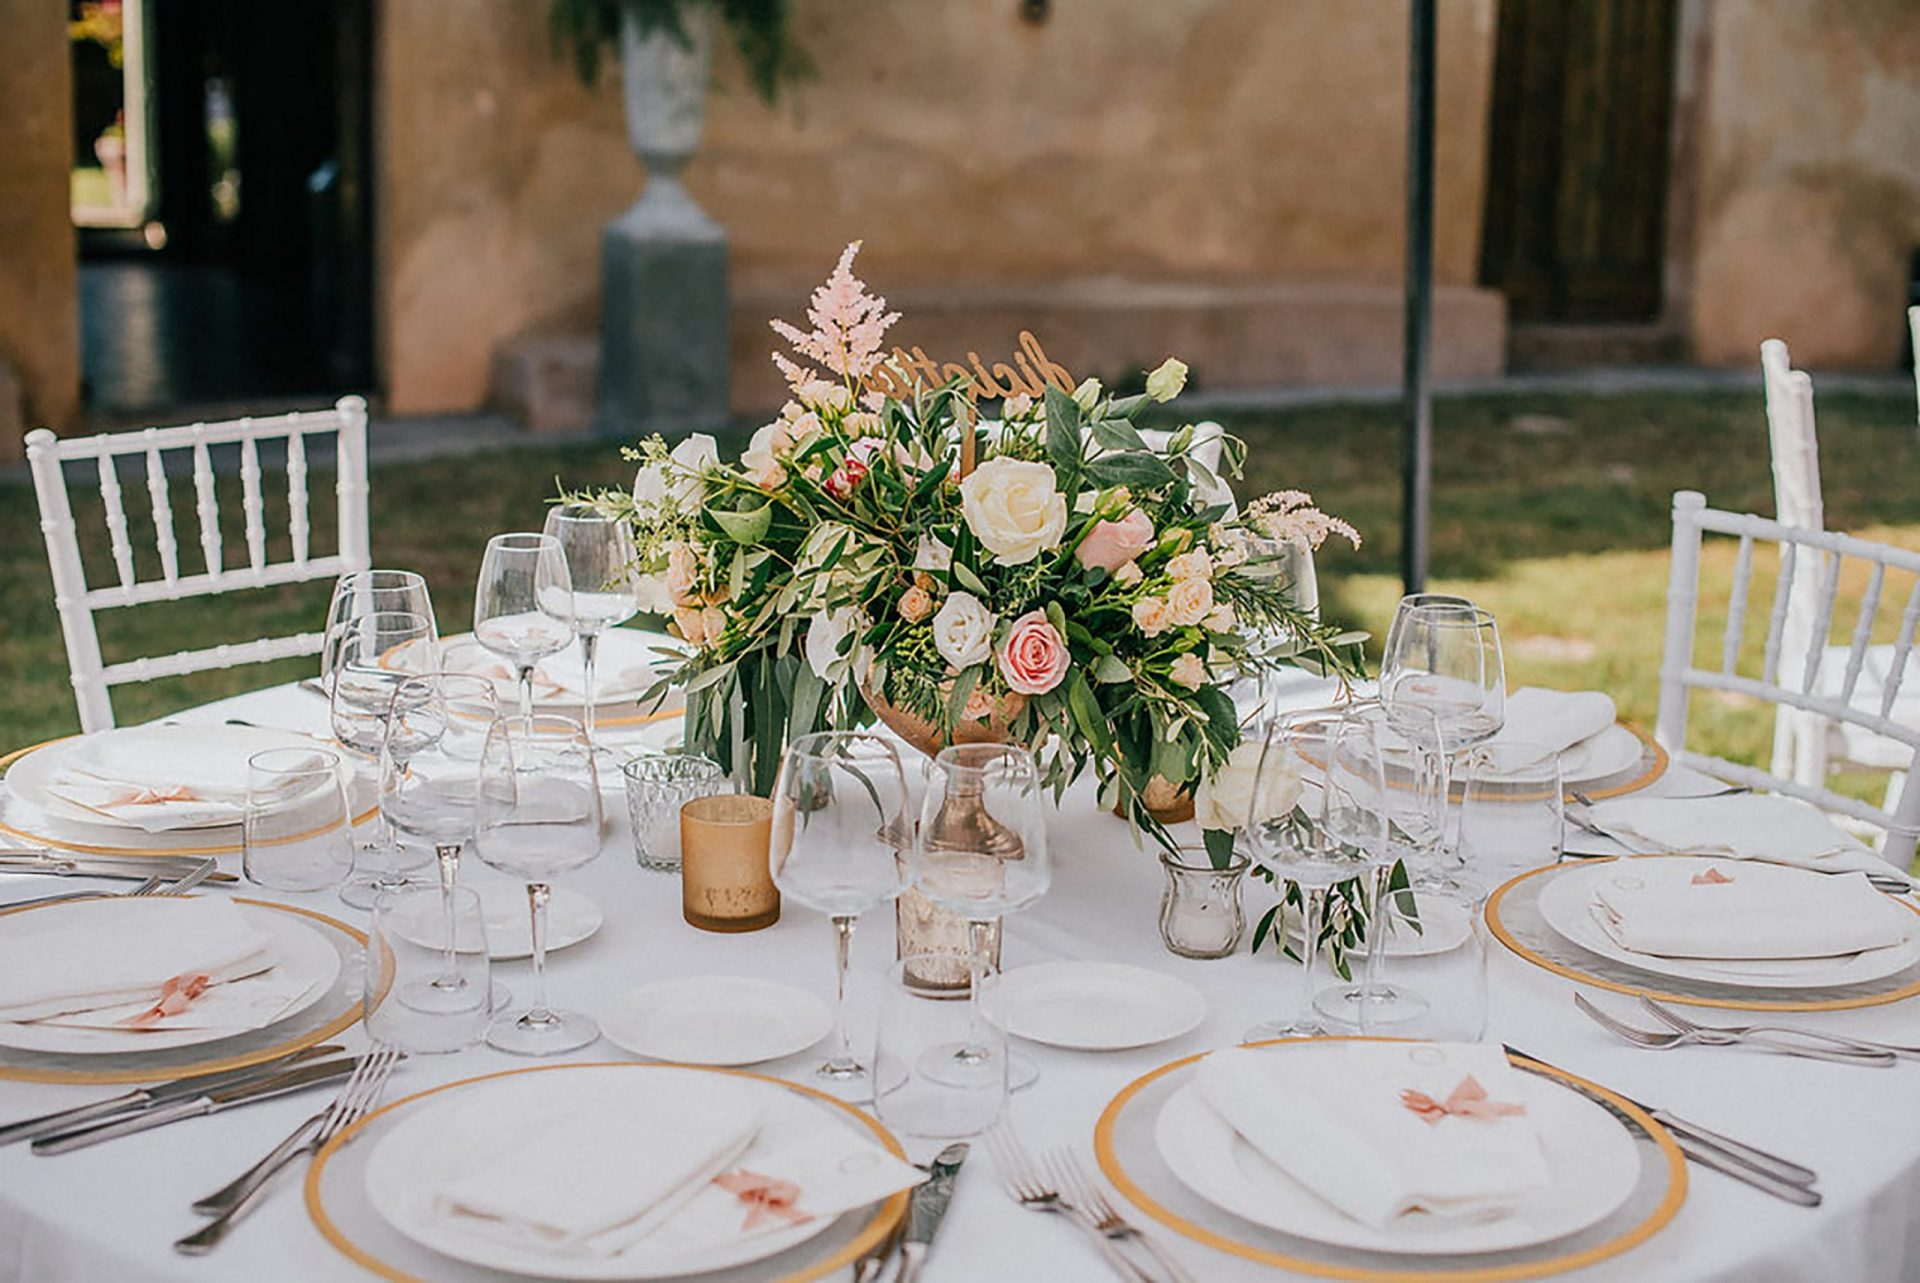 Ilaria e Giovanni, al fresco wedding, pastel tones and green flower decoration